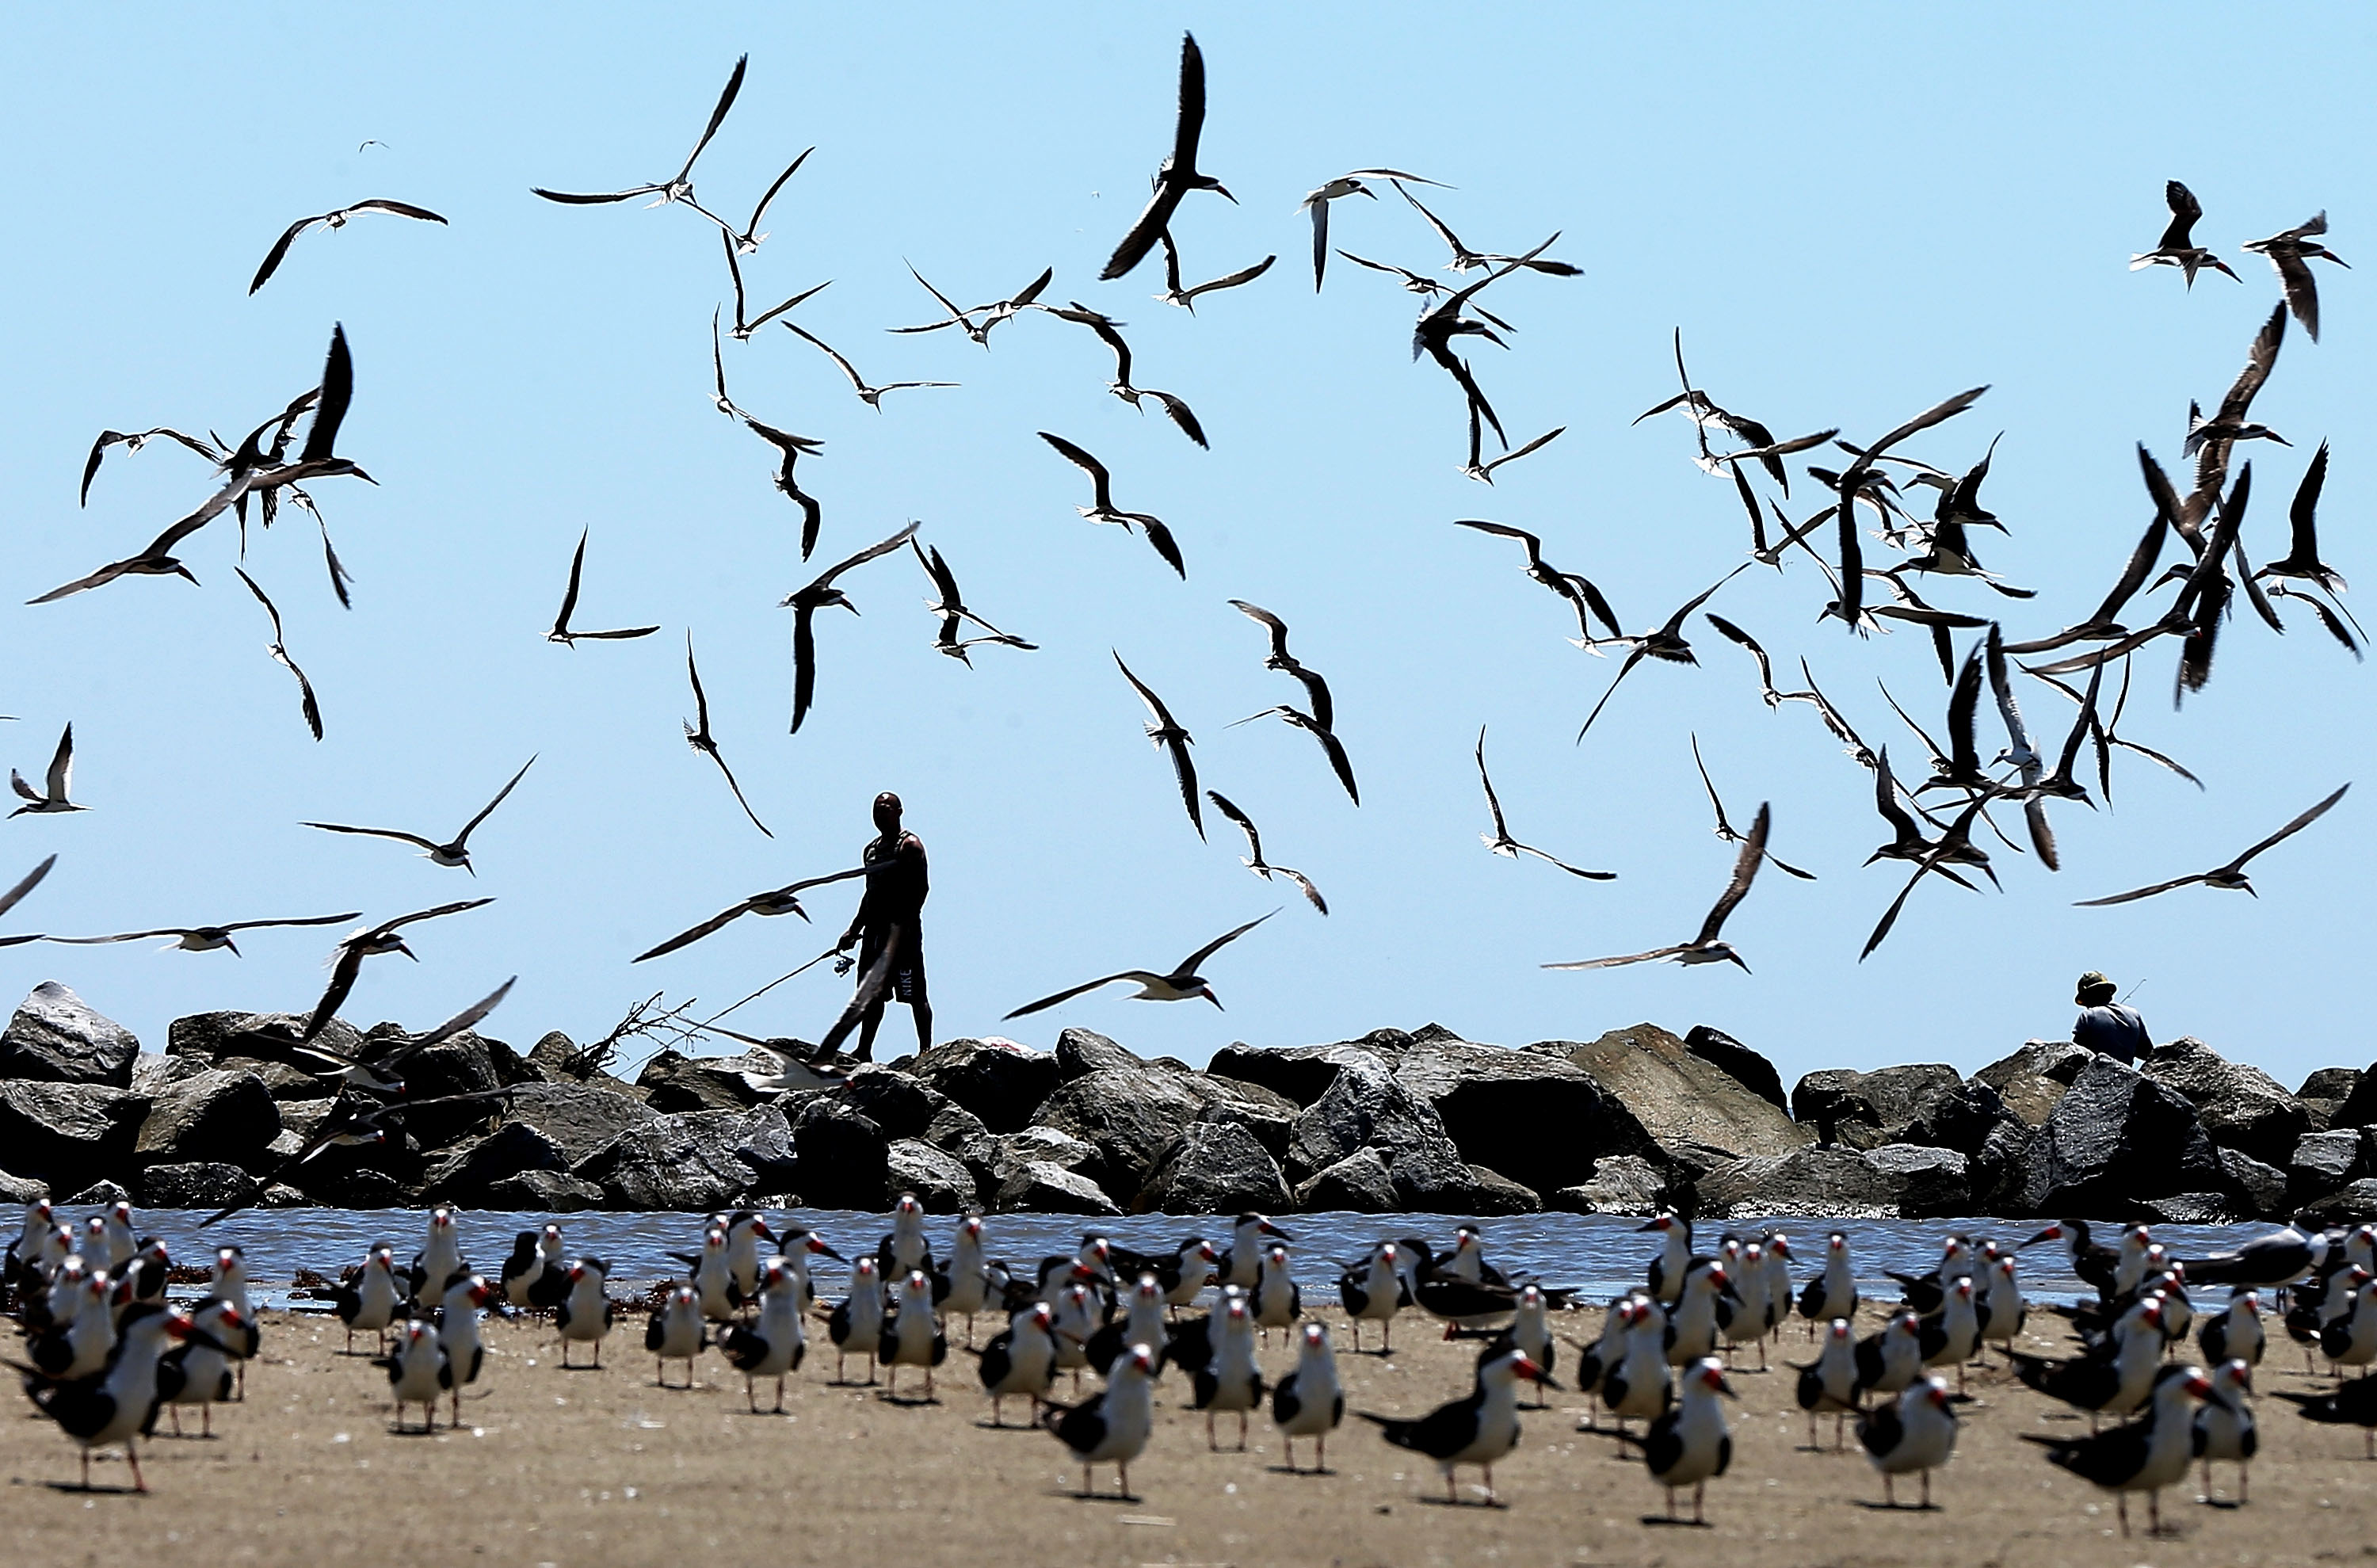 Birds fly over a man fishing on April 19, 2014 in Grand Isle, Louisiana, days after a BP  announcement that it is ending its  active cleanup  on the Louisiana coast from the Deepwater Horizon oil spill.